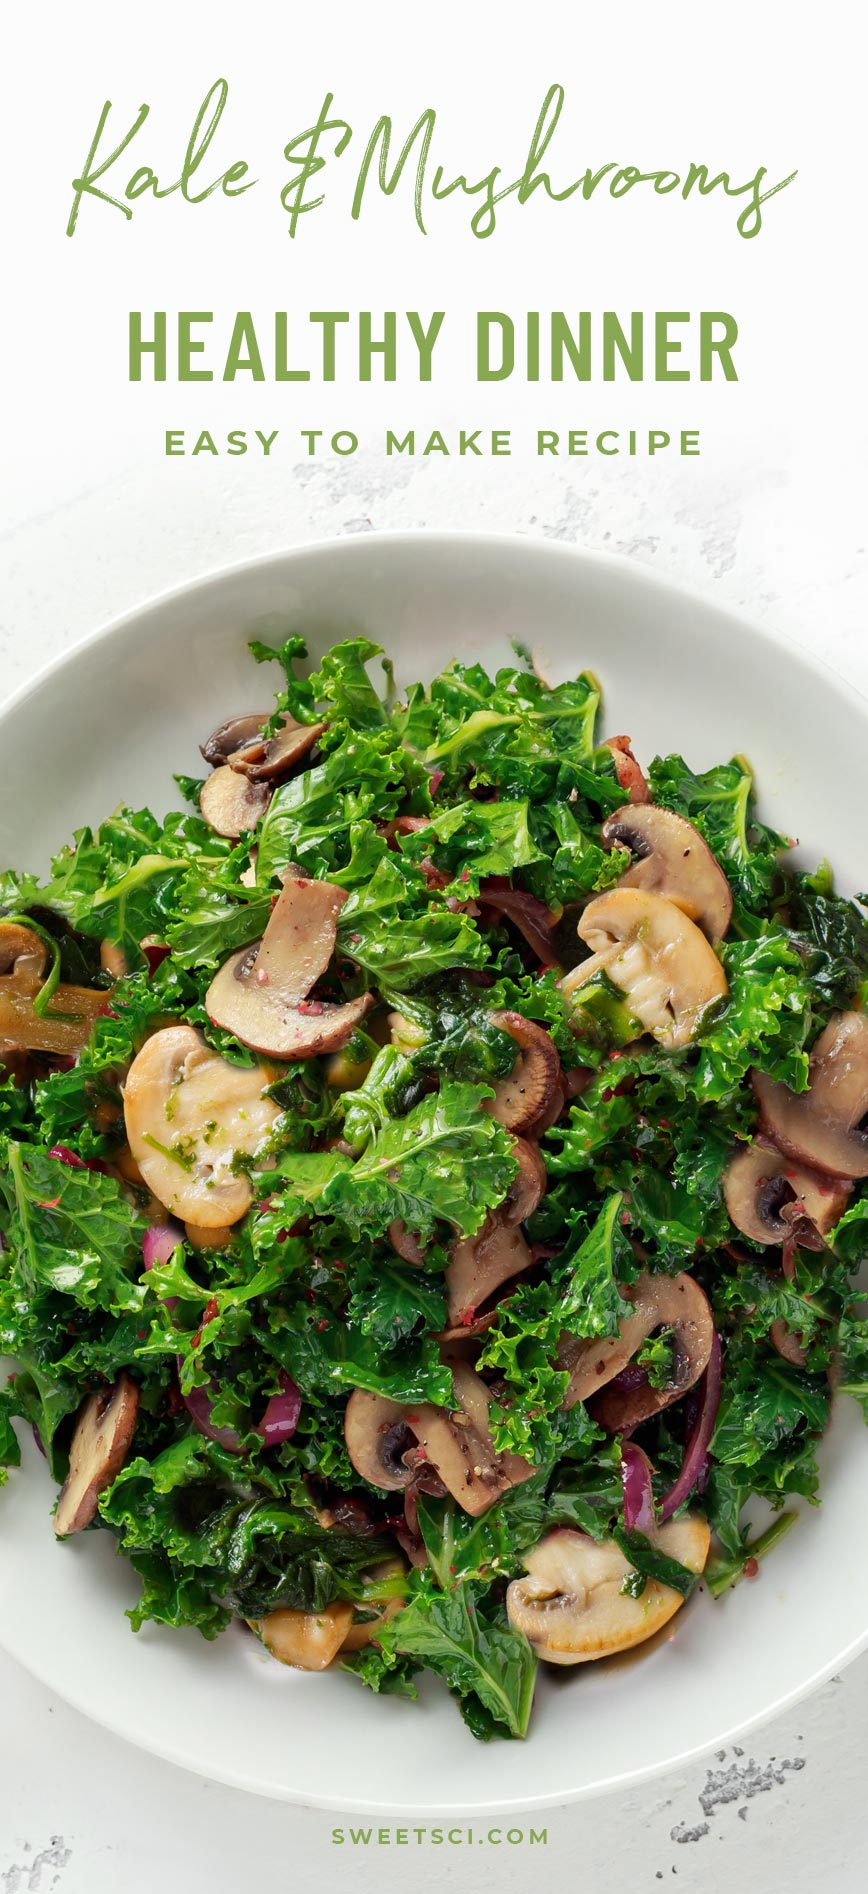 Sautéed Kale and Mushrooms Recipe - Healthy and Delicious Dinner or a Side Dish, Simple, Easy to make - Sweet Science Nutrition & Wellness, Healthy Sobriety with health coach Elena Skroznikova, Vegan, Healthy, Easy, Homemade, Low Carb, Plant Based Diet, Clean Eating.